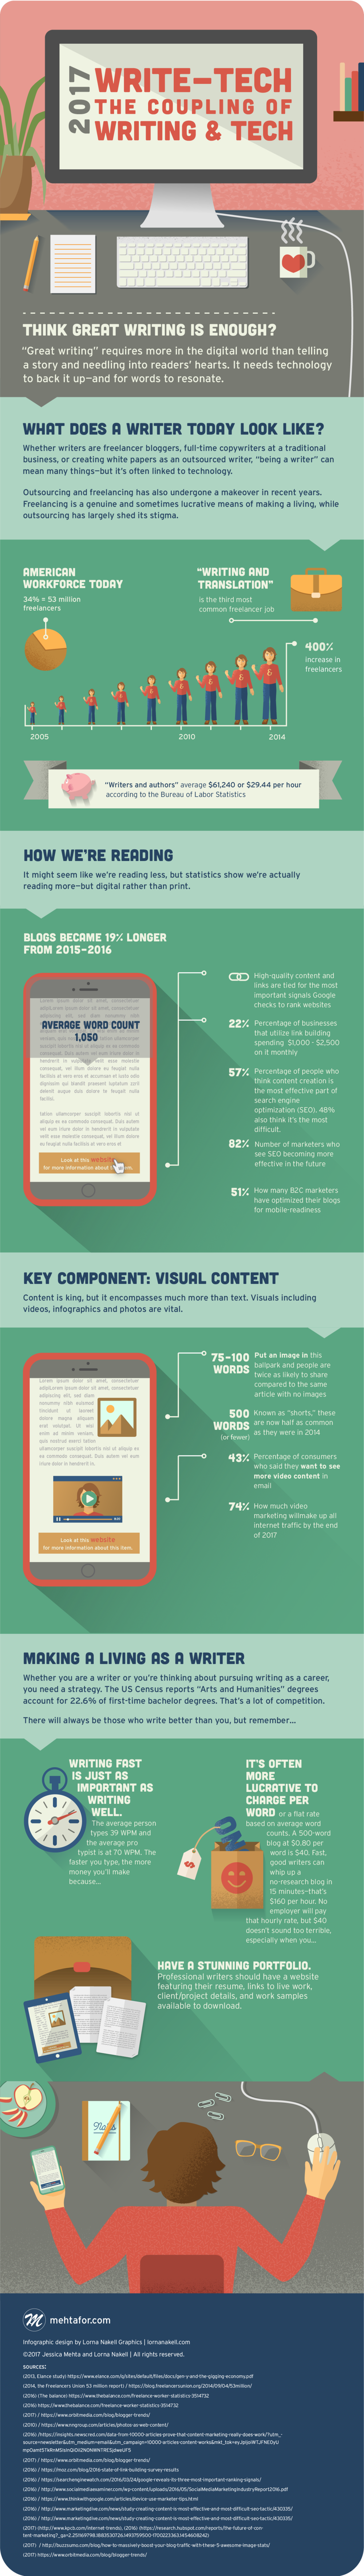 write-tech-infographic